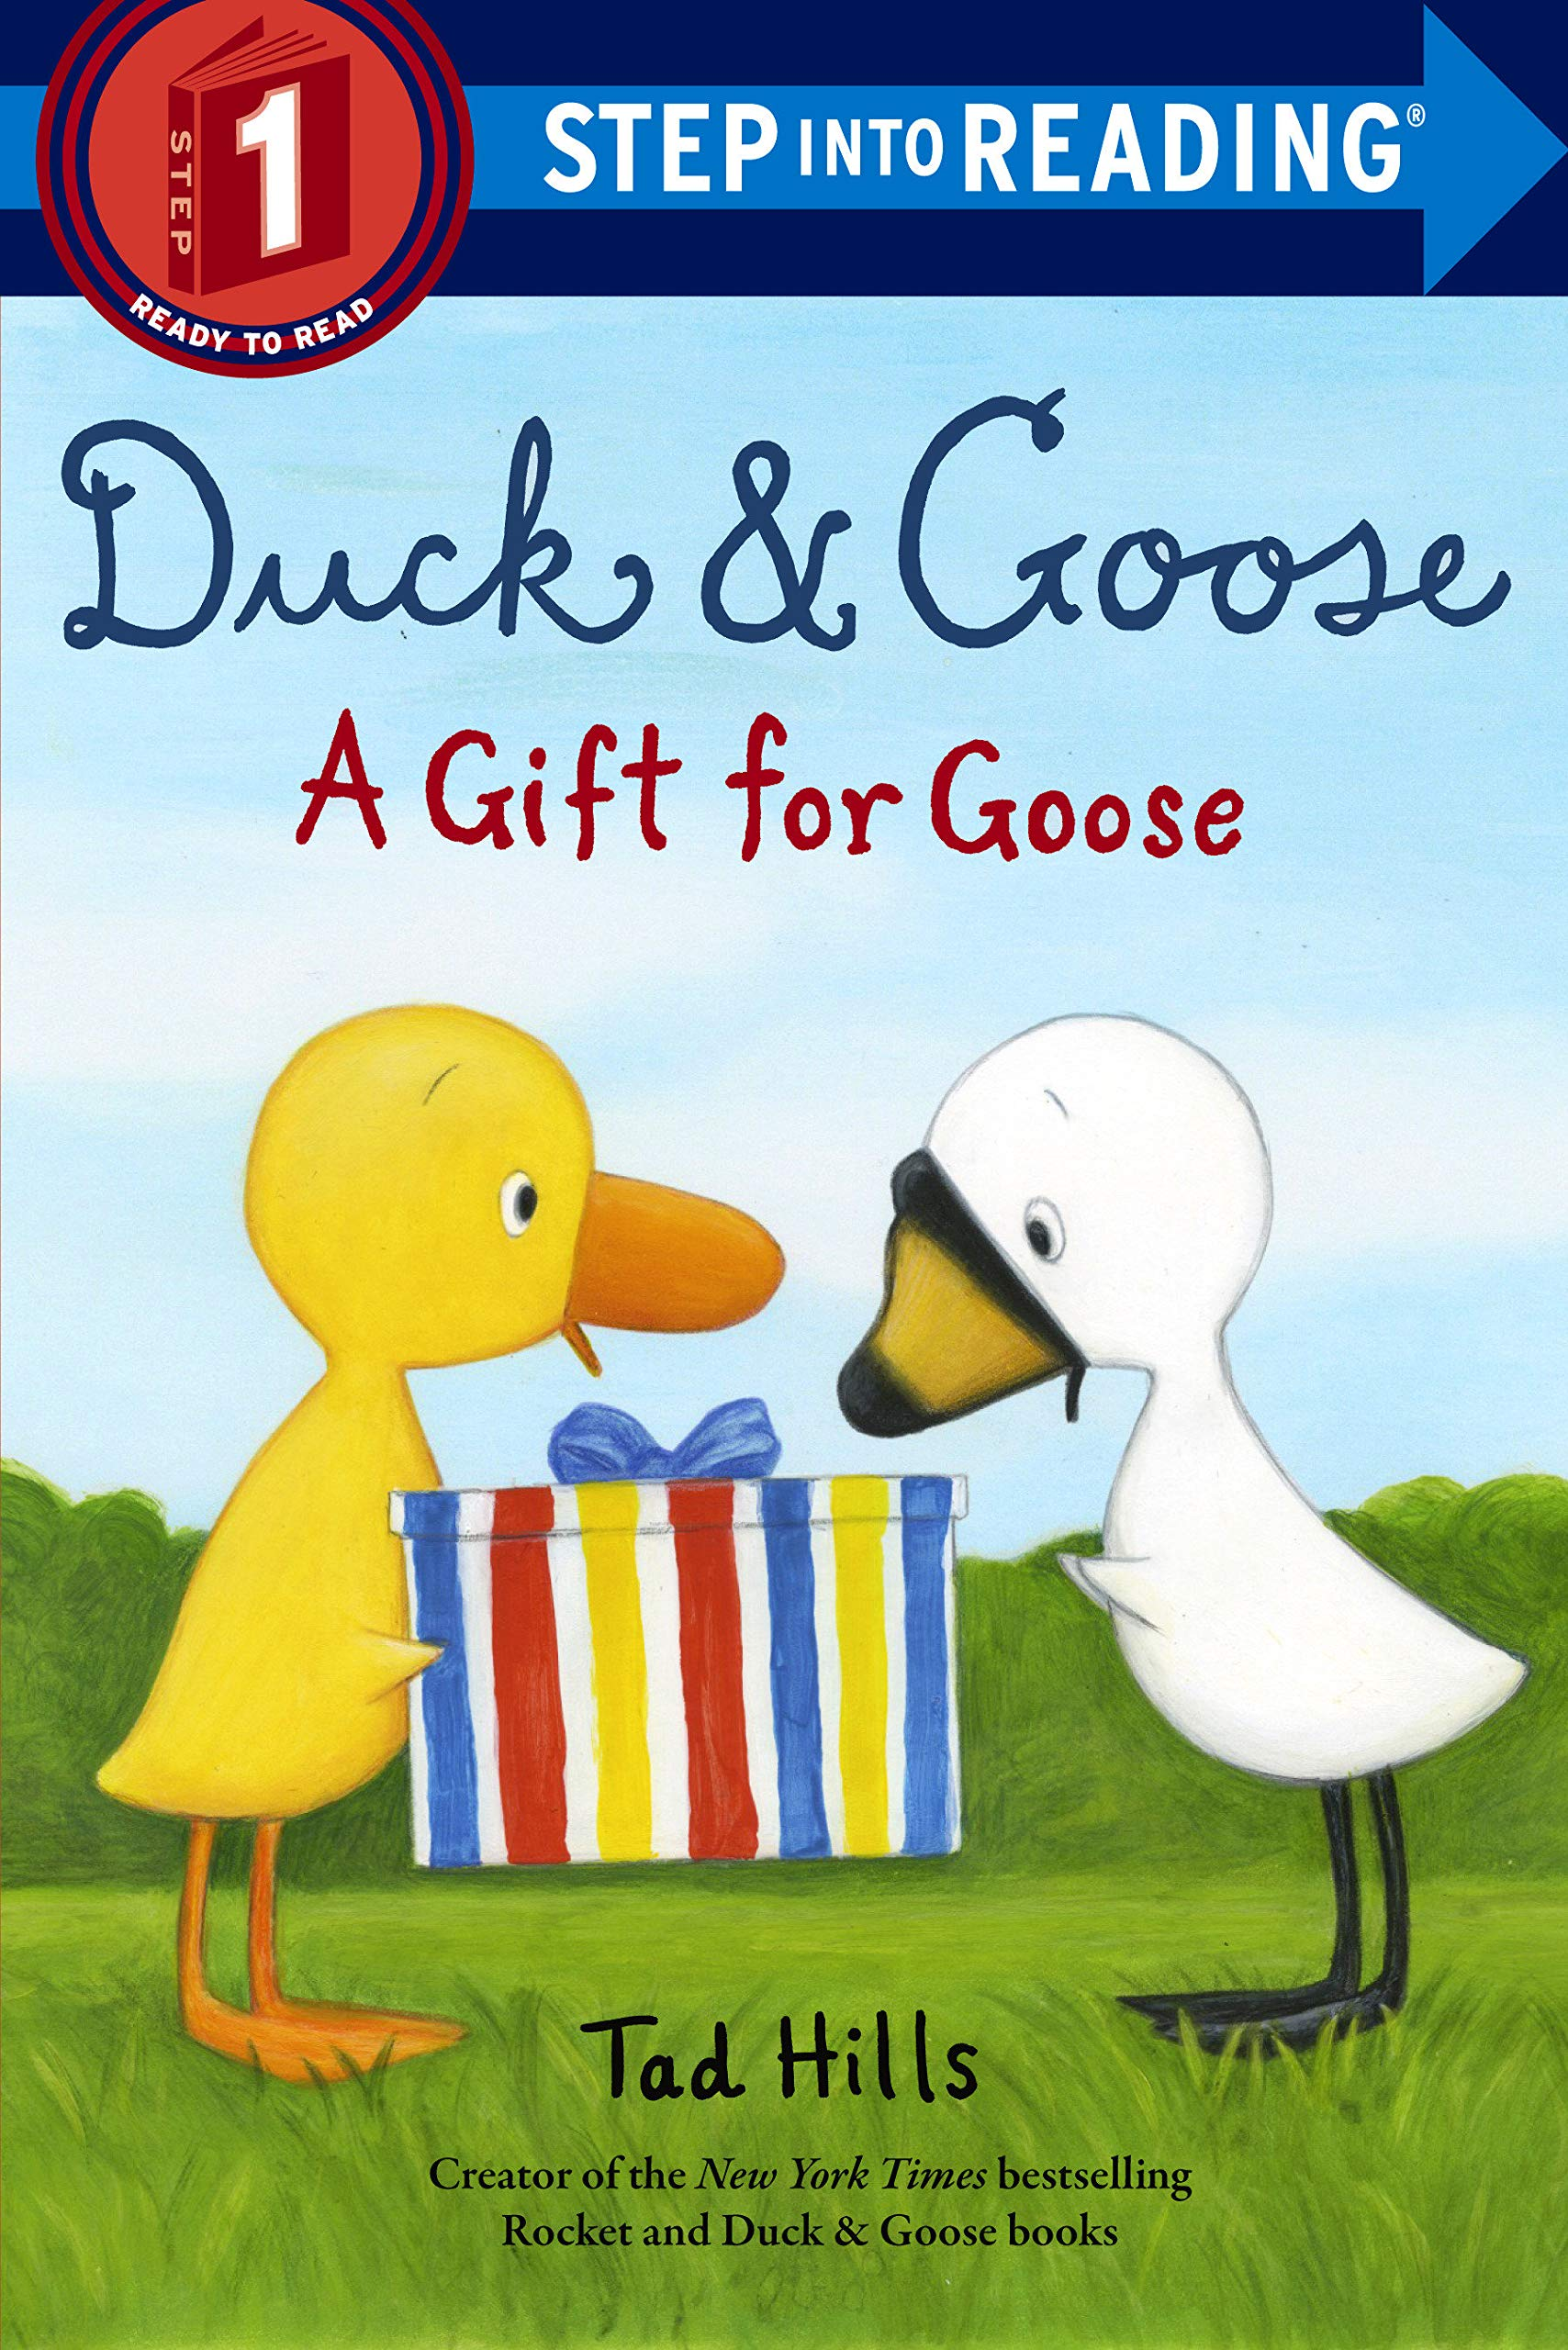 Book - Duck & Goose: A Gift for Goose